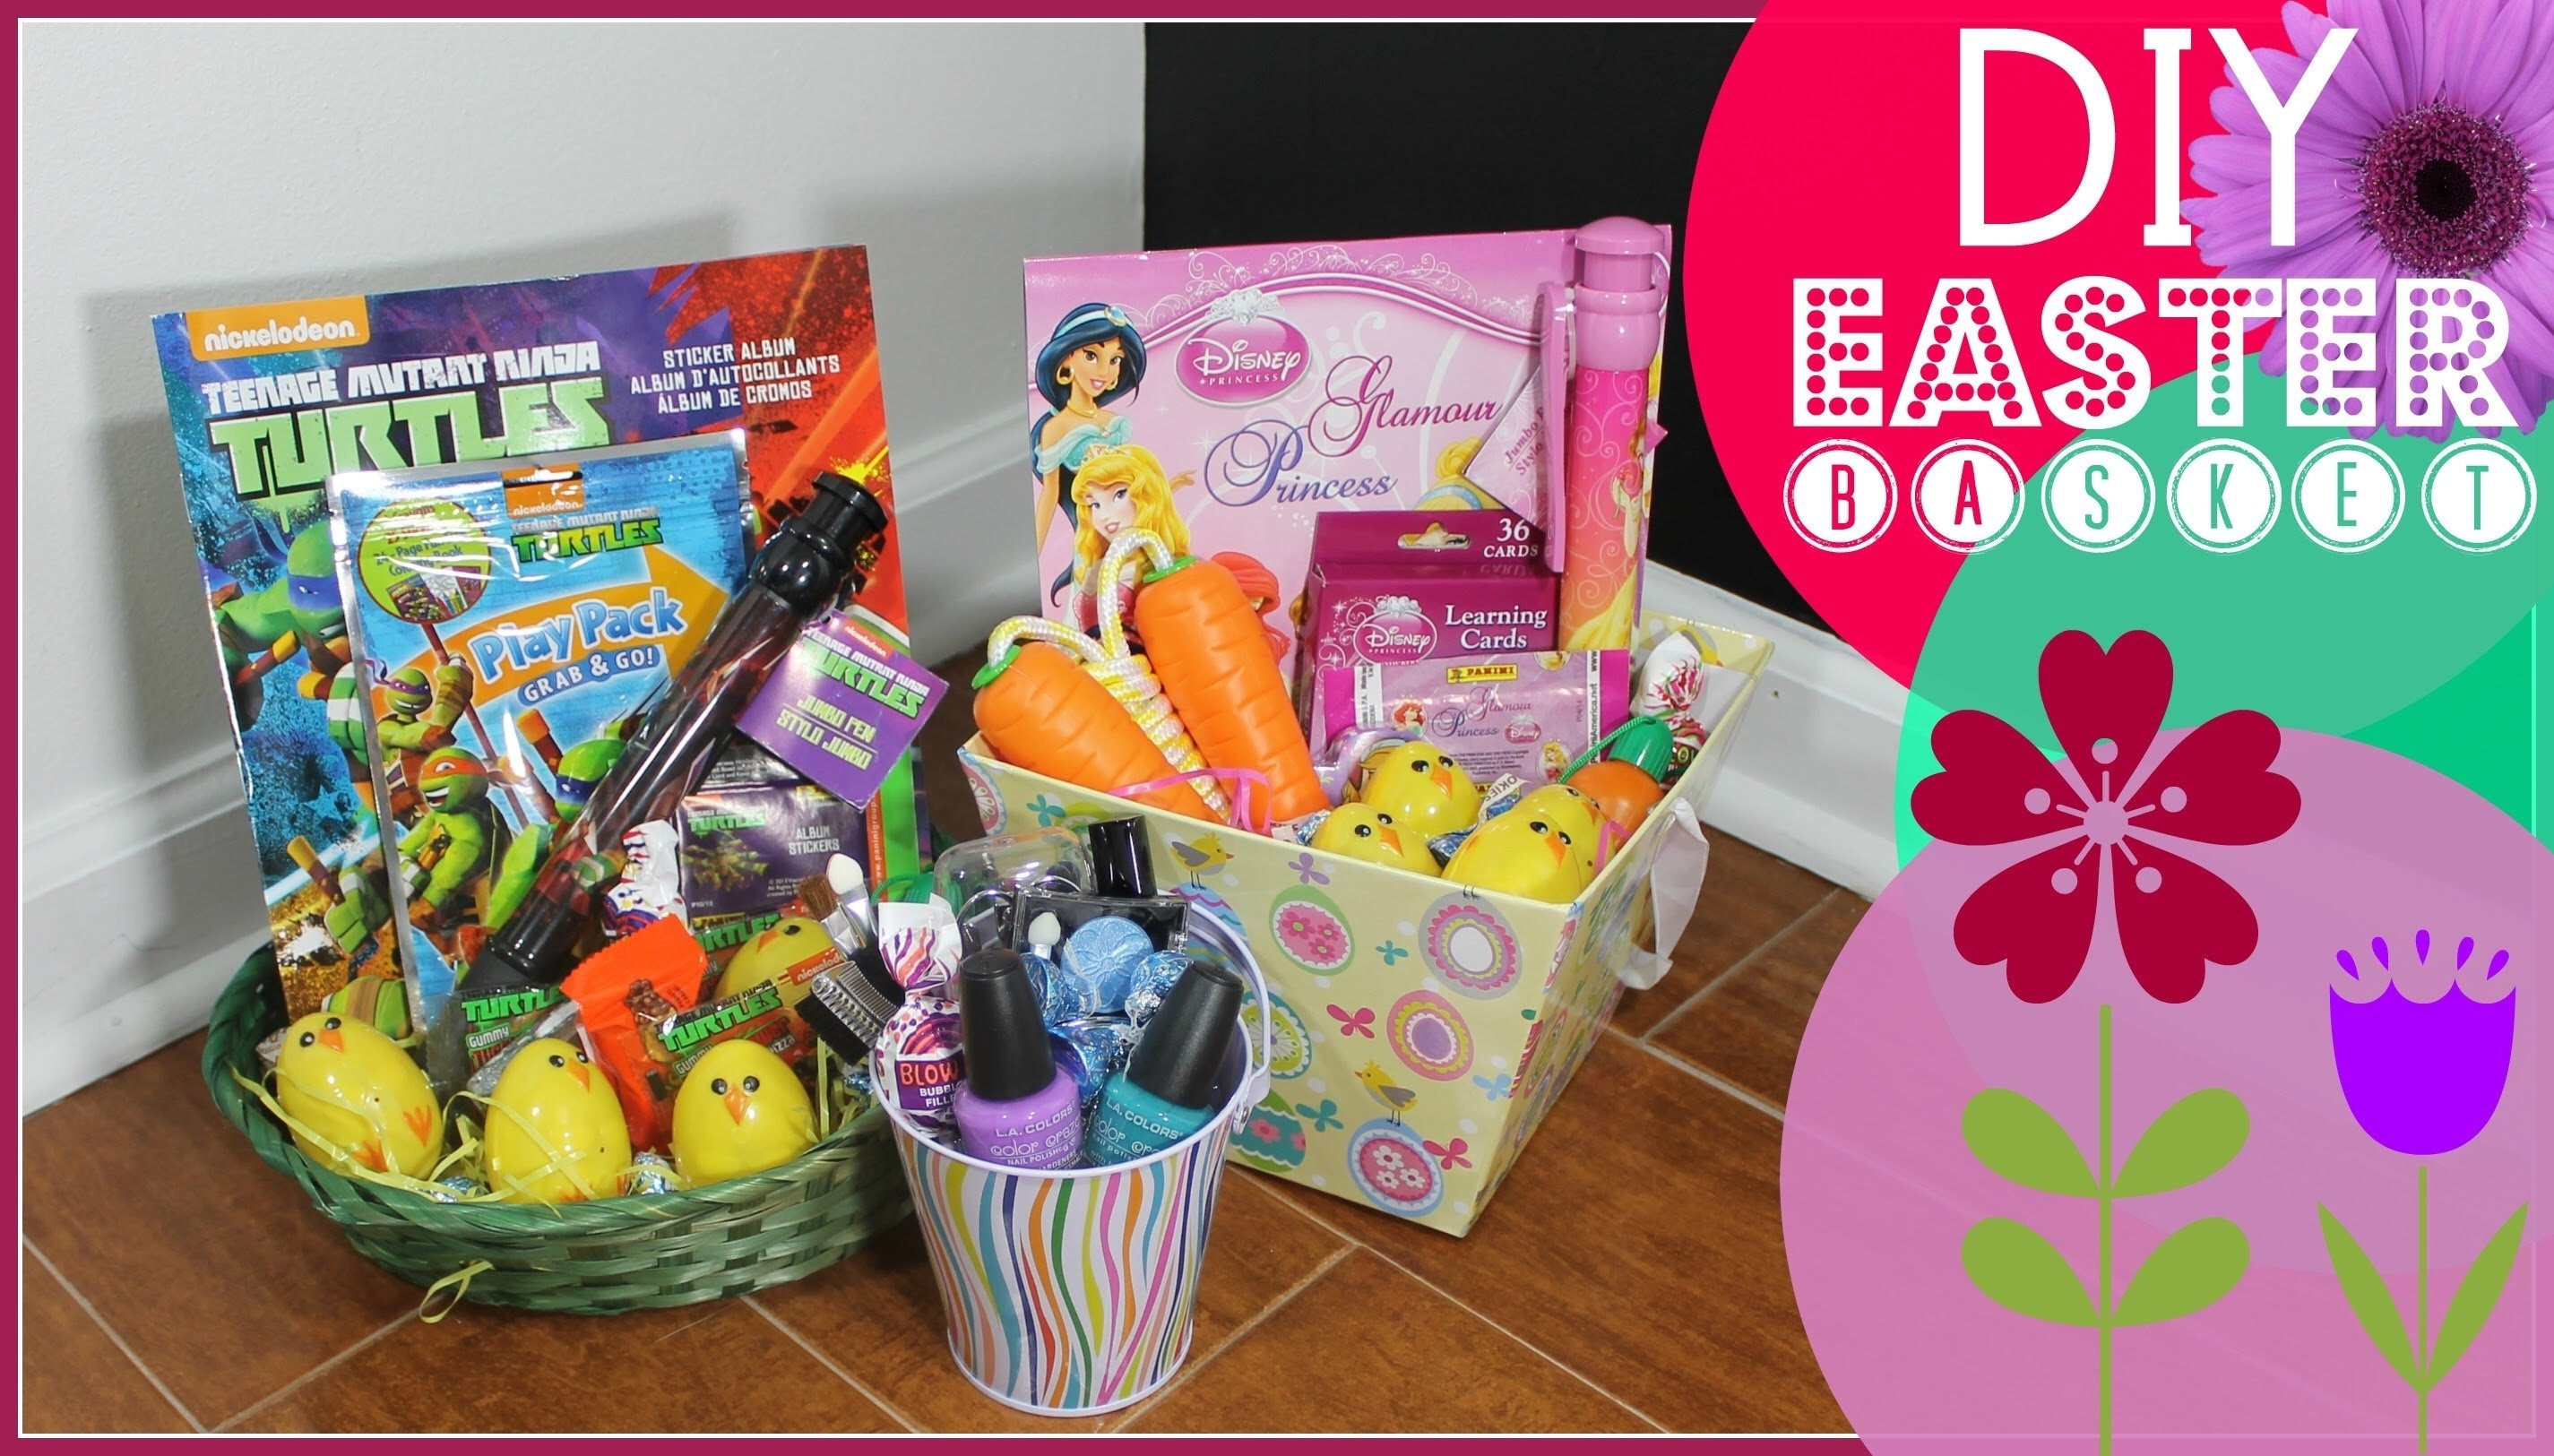 10 Beautiful Easter Baskets Ideas For Adults easter basket ideas youtube 3 2020